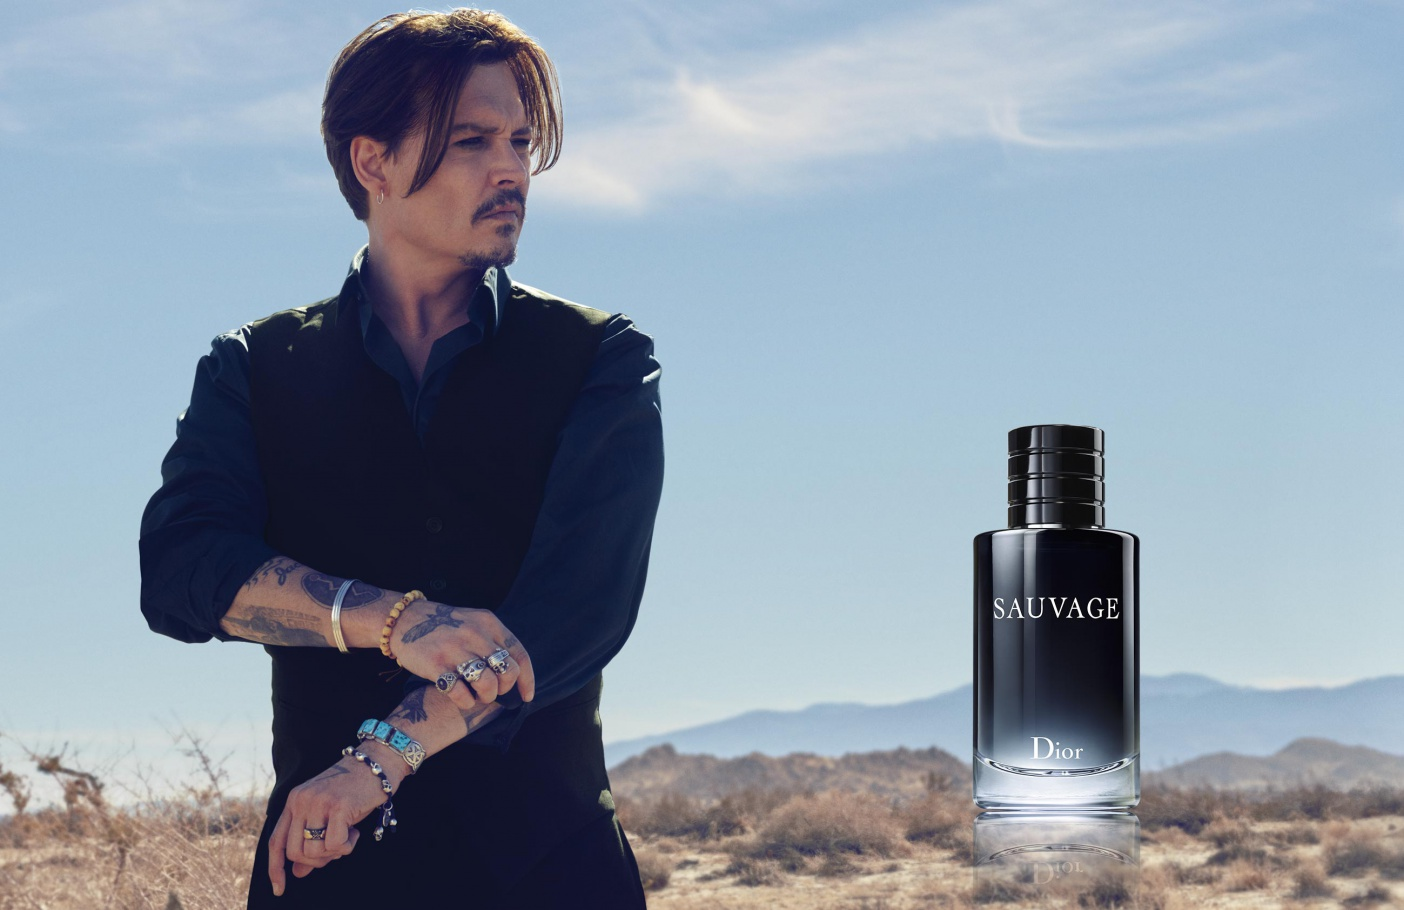 Johnny Depp Fronts Dior Sauvage Fragrance Campaign